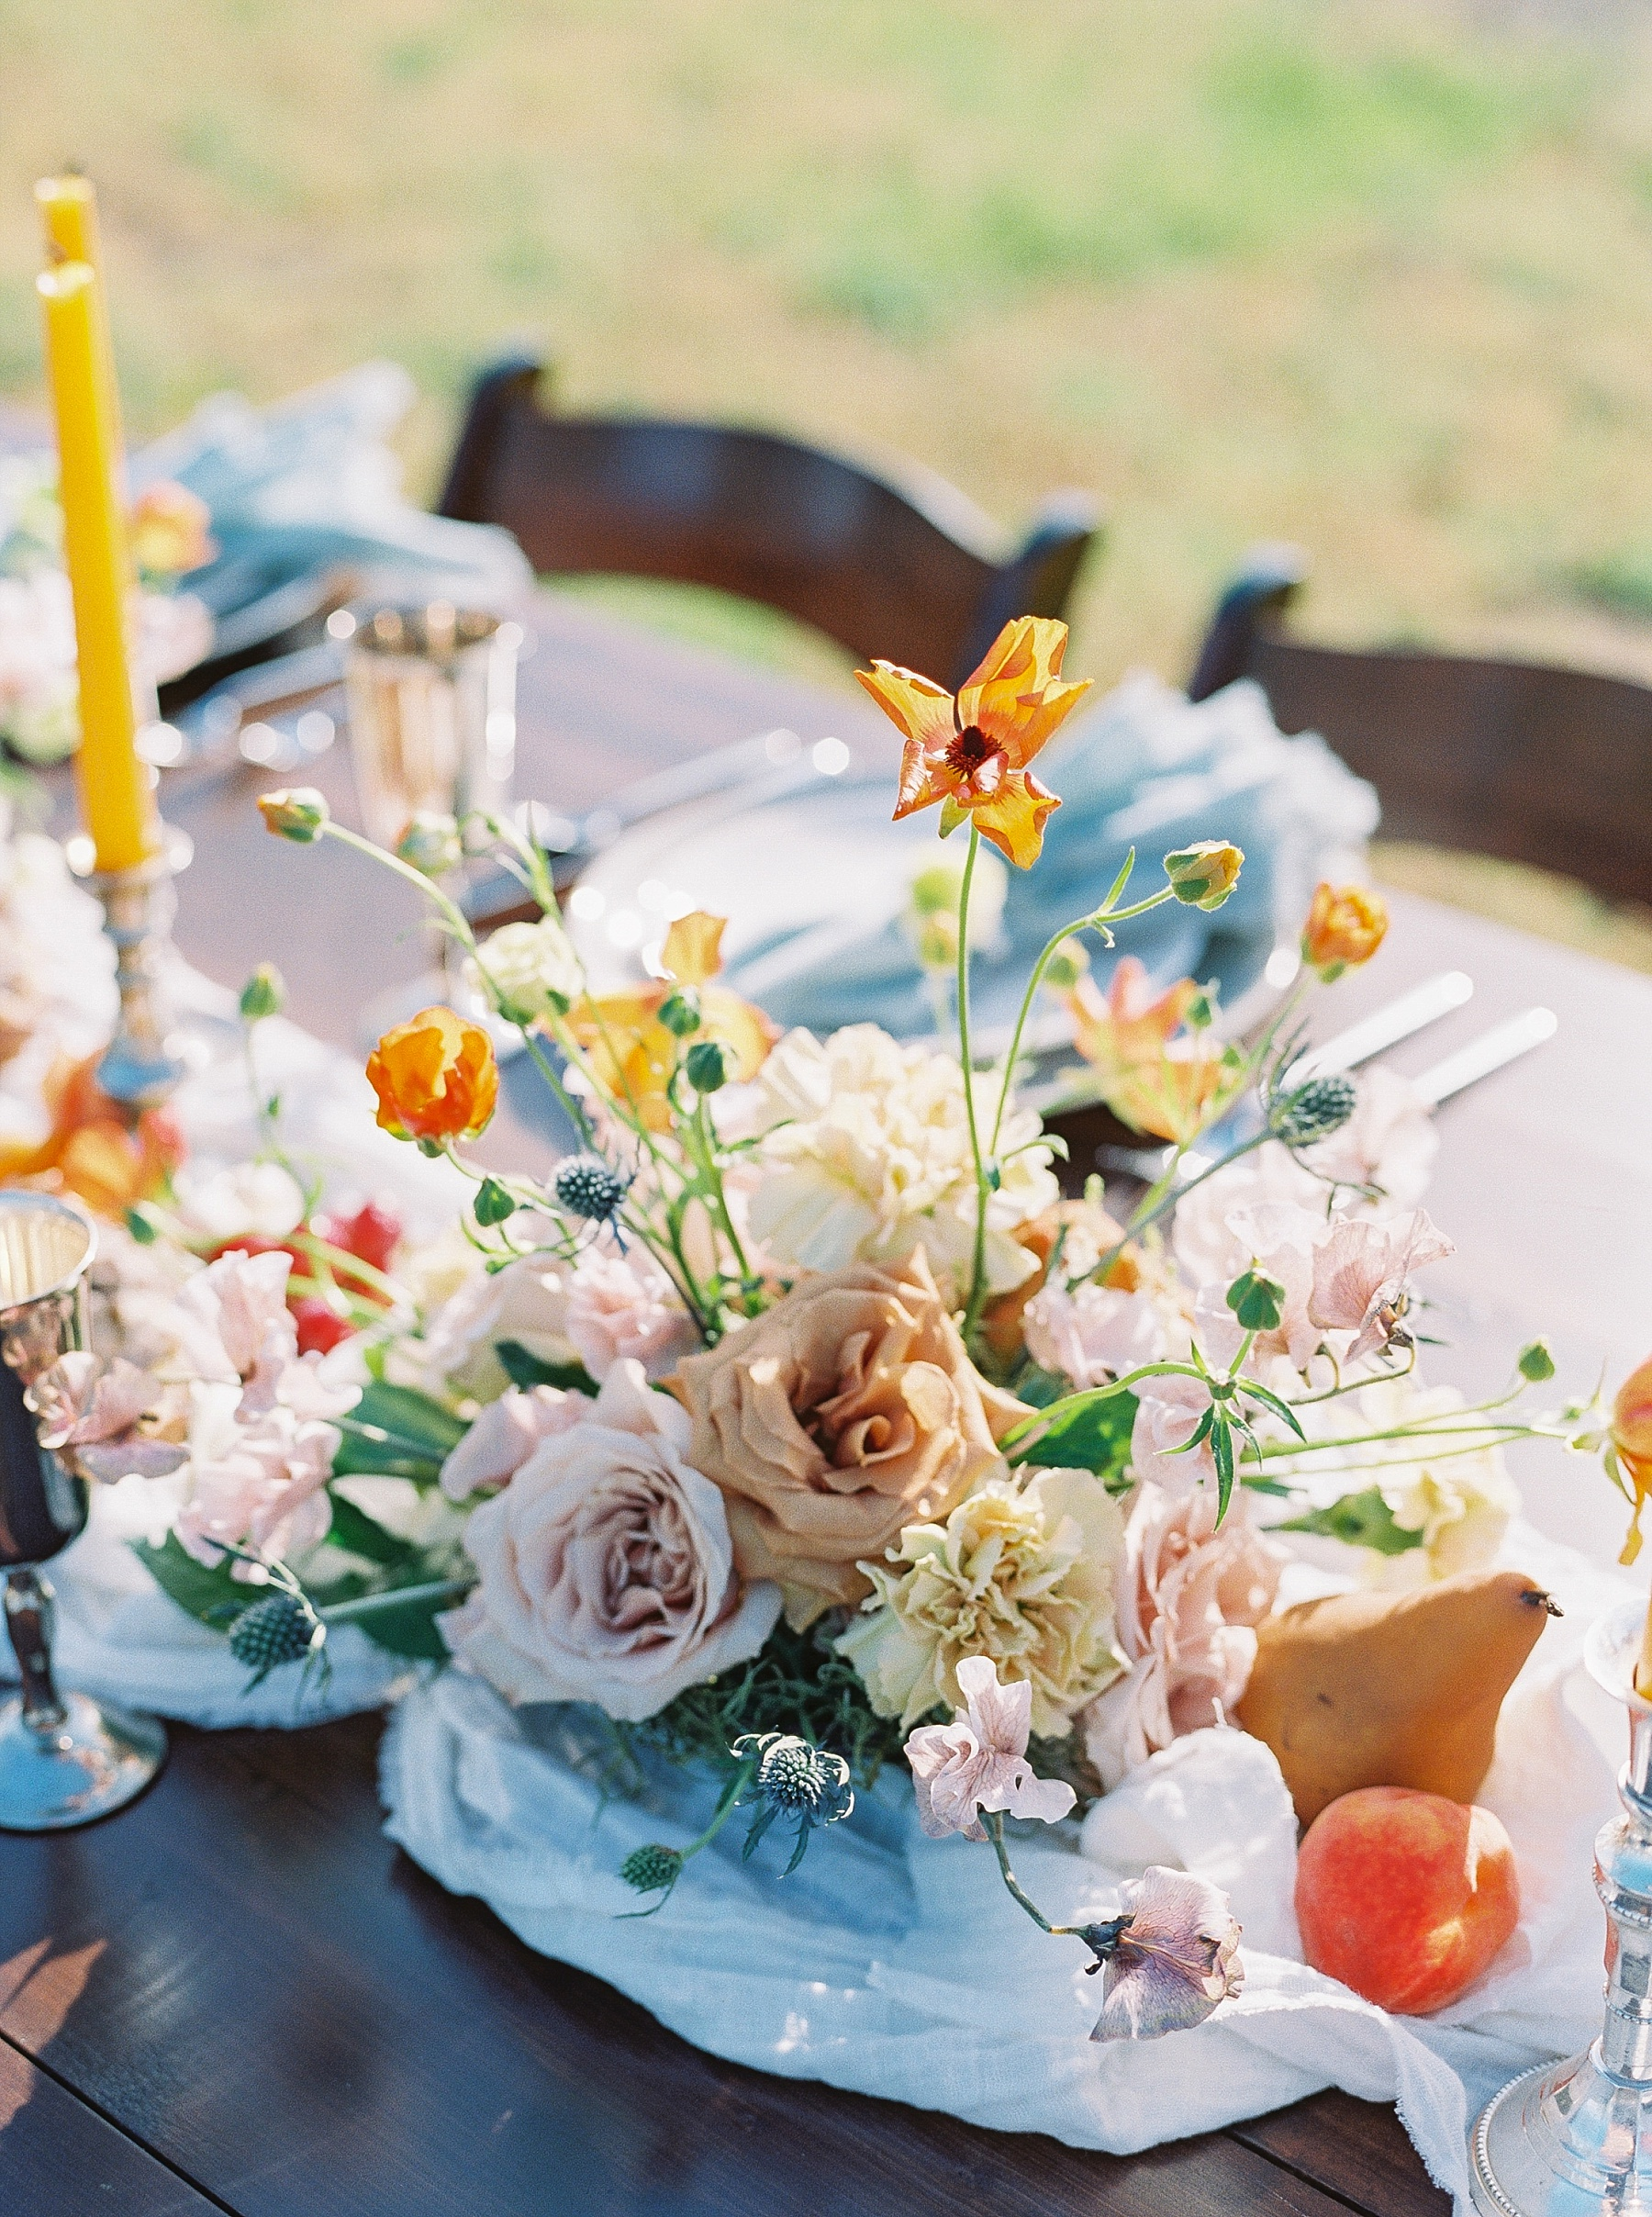 Intimate Spanish and French Inspired Destination Wedding with Lakeside Dinner Party at Dusk at Wildcliff by Kelsi Kliethermes Photography Best Missouri and Maui Wedding Photographer_0069.jpg